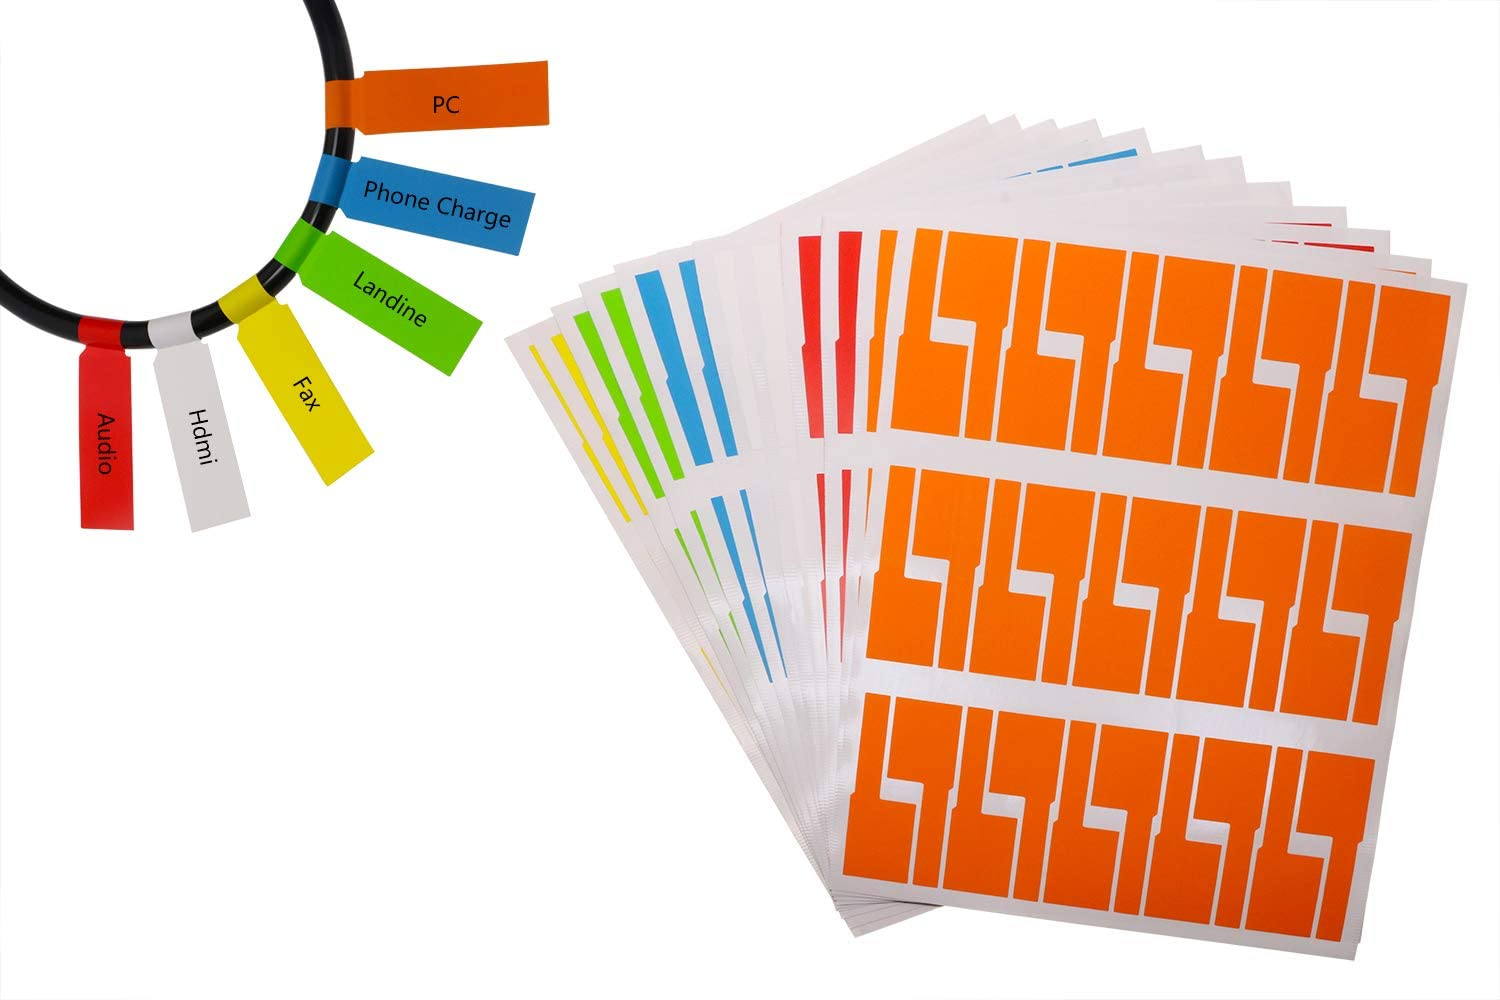 Mini Skater 240 Labels 8 Sheet Colorful Waterproof Cord Labels Tags Write on Stickers Tear Resistant Flexible Works Cord Identification Labels for Laser Printer (8 Sheet (240 Labels))